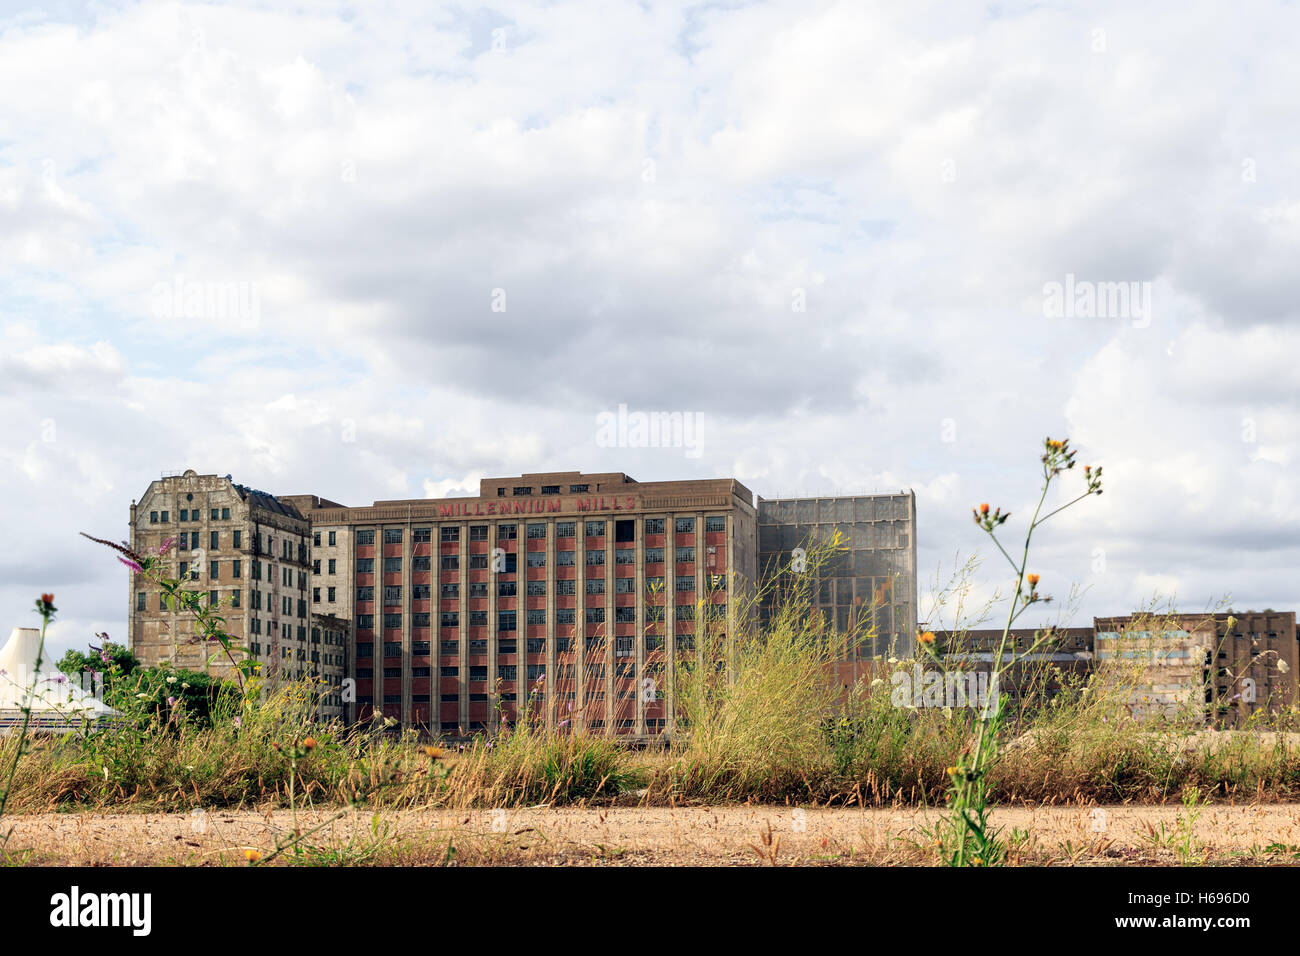 Abandoned building of Millennium Mills, former flour mills built in the early 20th century - Stock Image